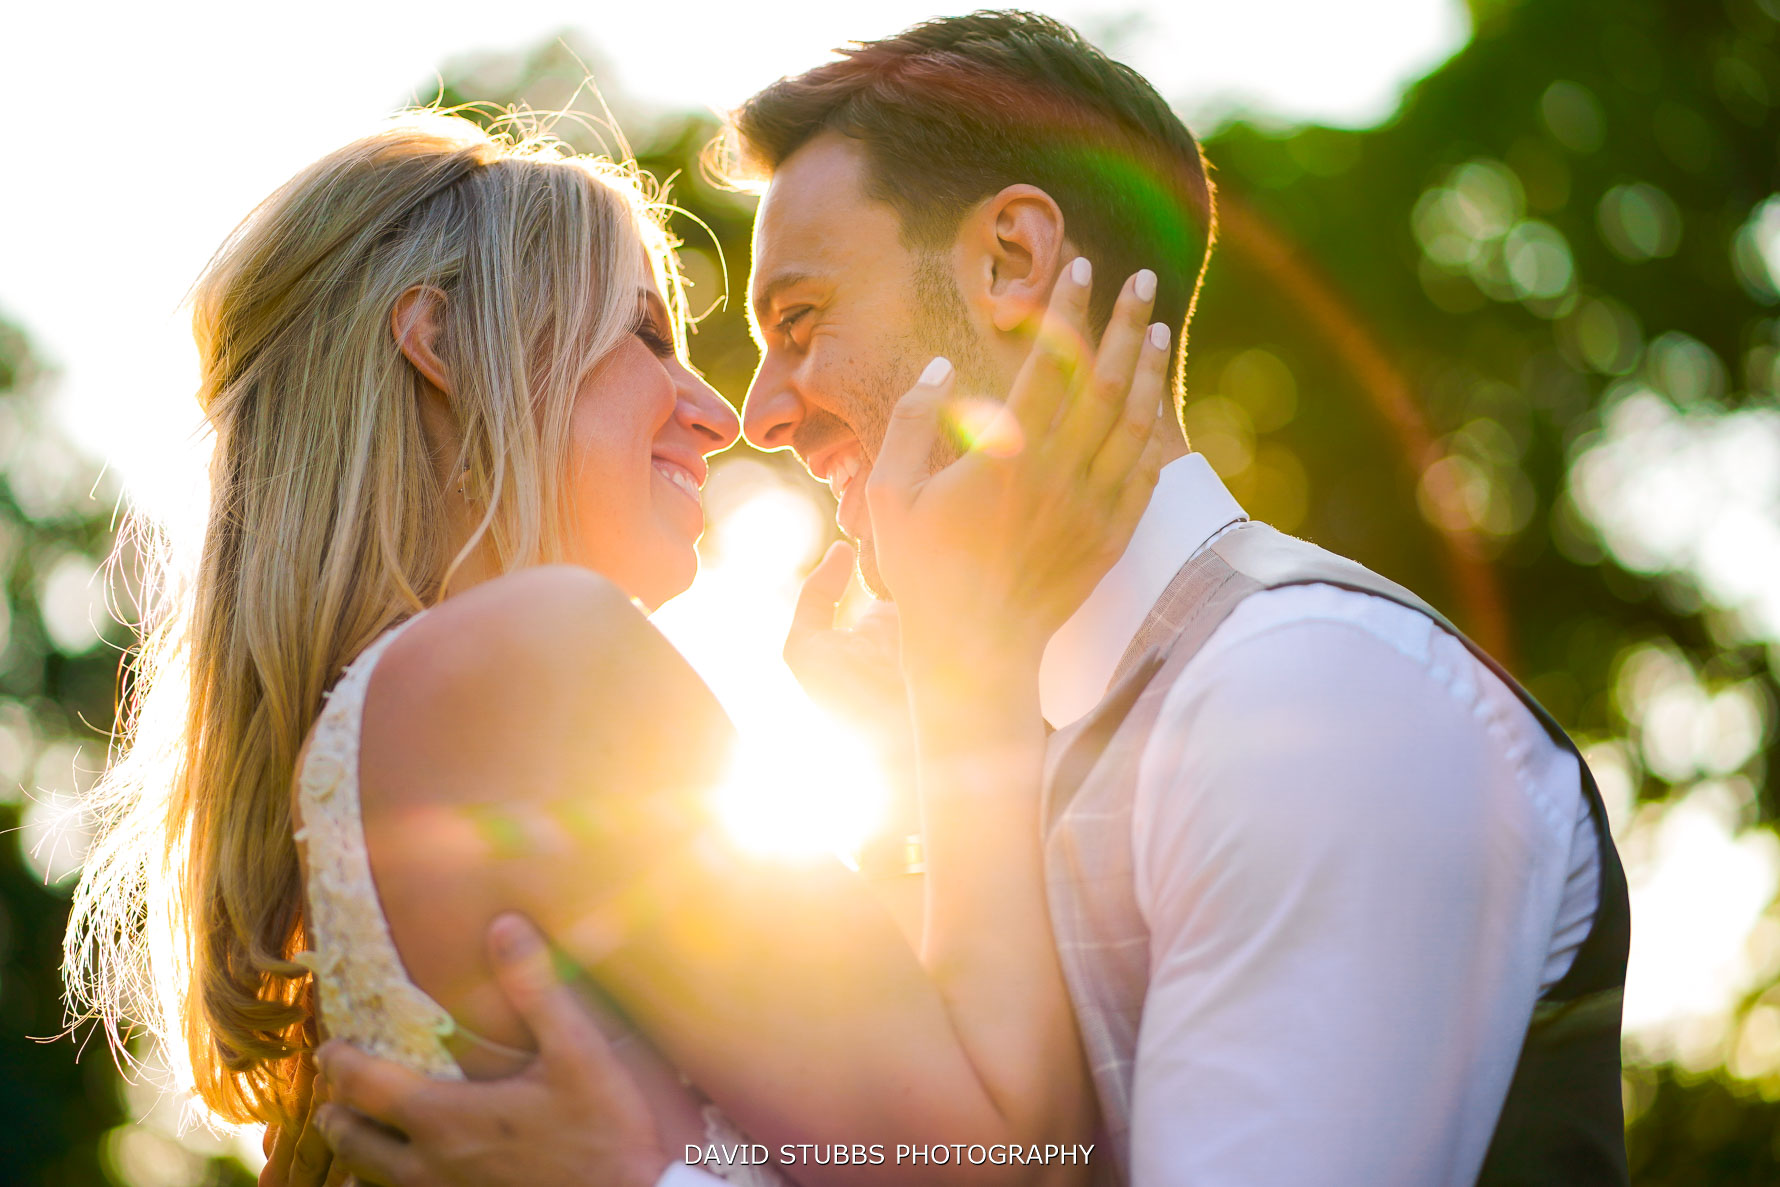 light and flare comingto the lens for this wedding photo